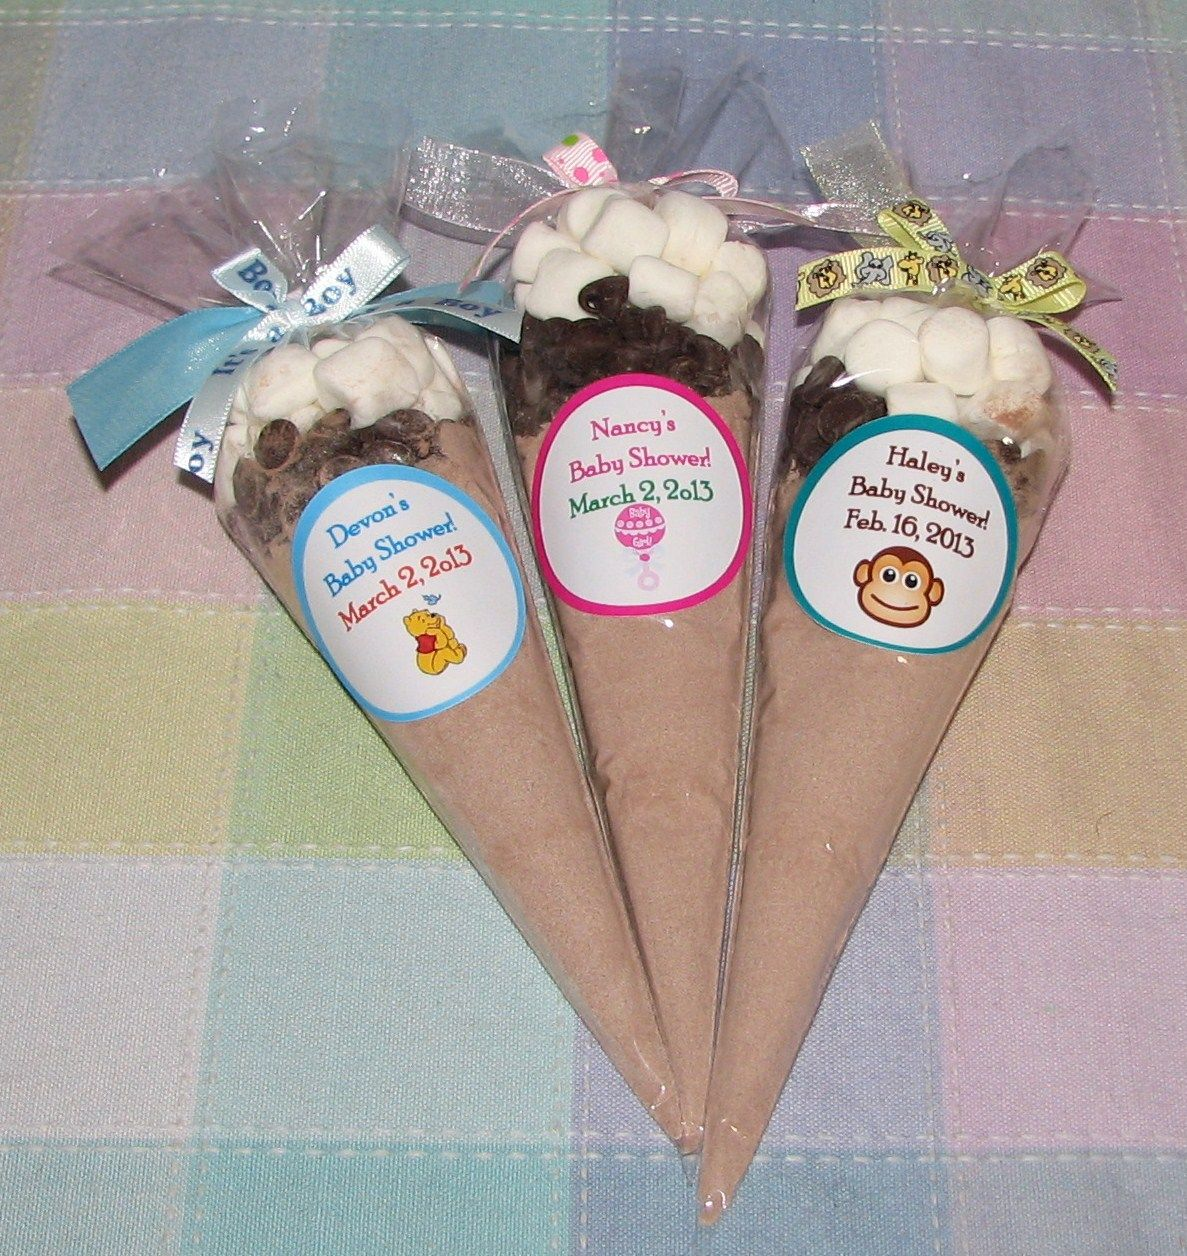 Another Good Idea For Winter Baby Shower Favors  Hot Chocolate DIY Favors   We Can Design The Sticker And Ribbons To Fit The Theme